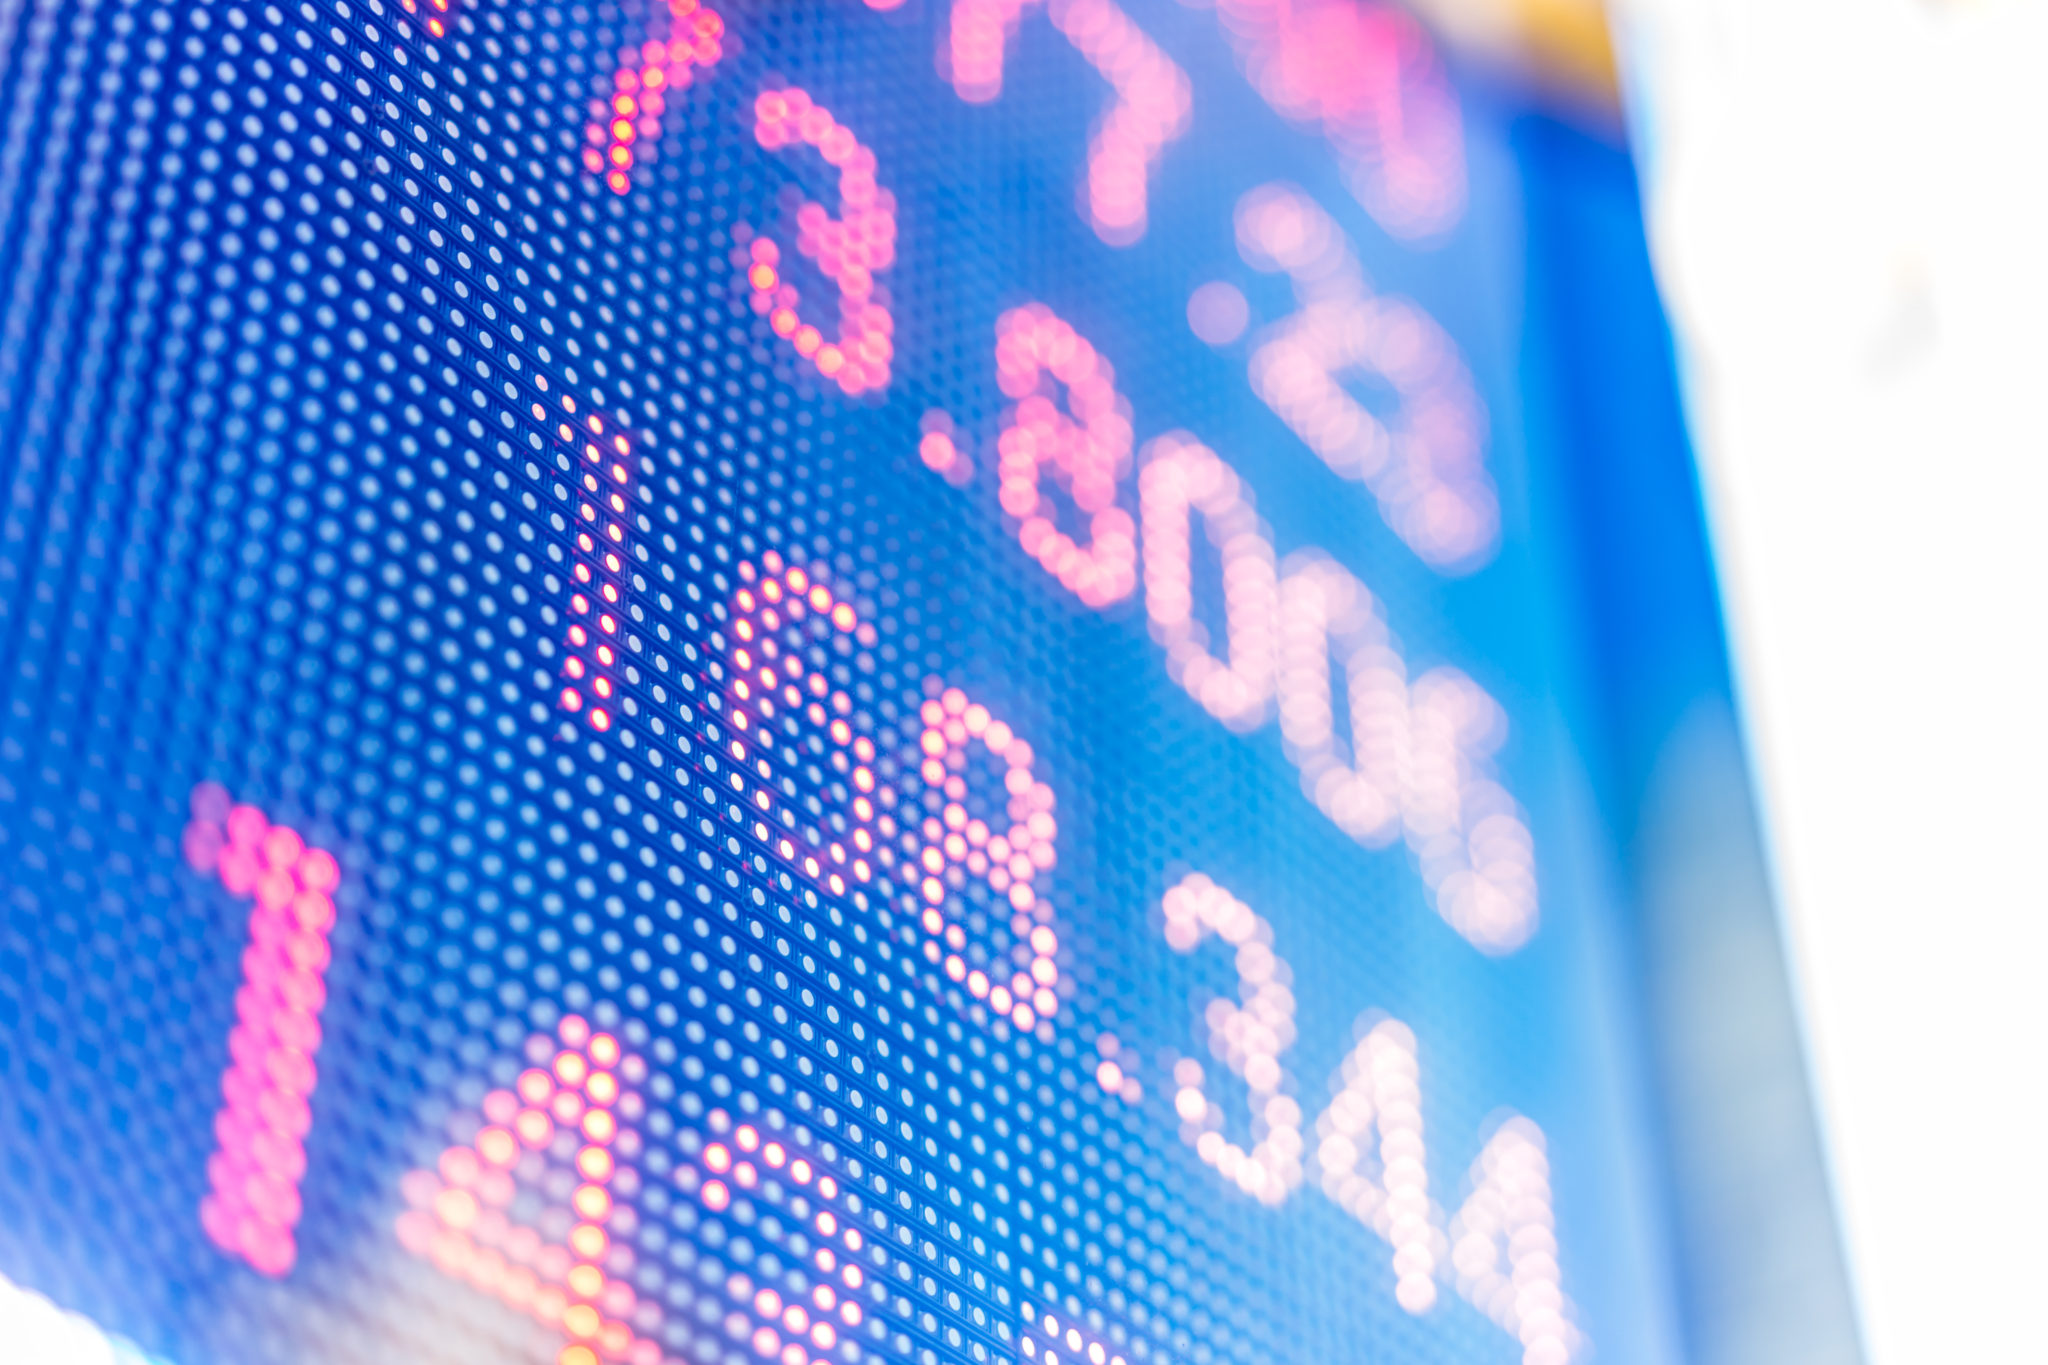 FS_stock_market_numbers